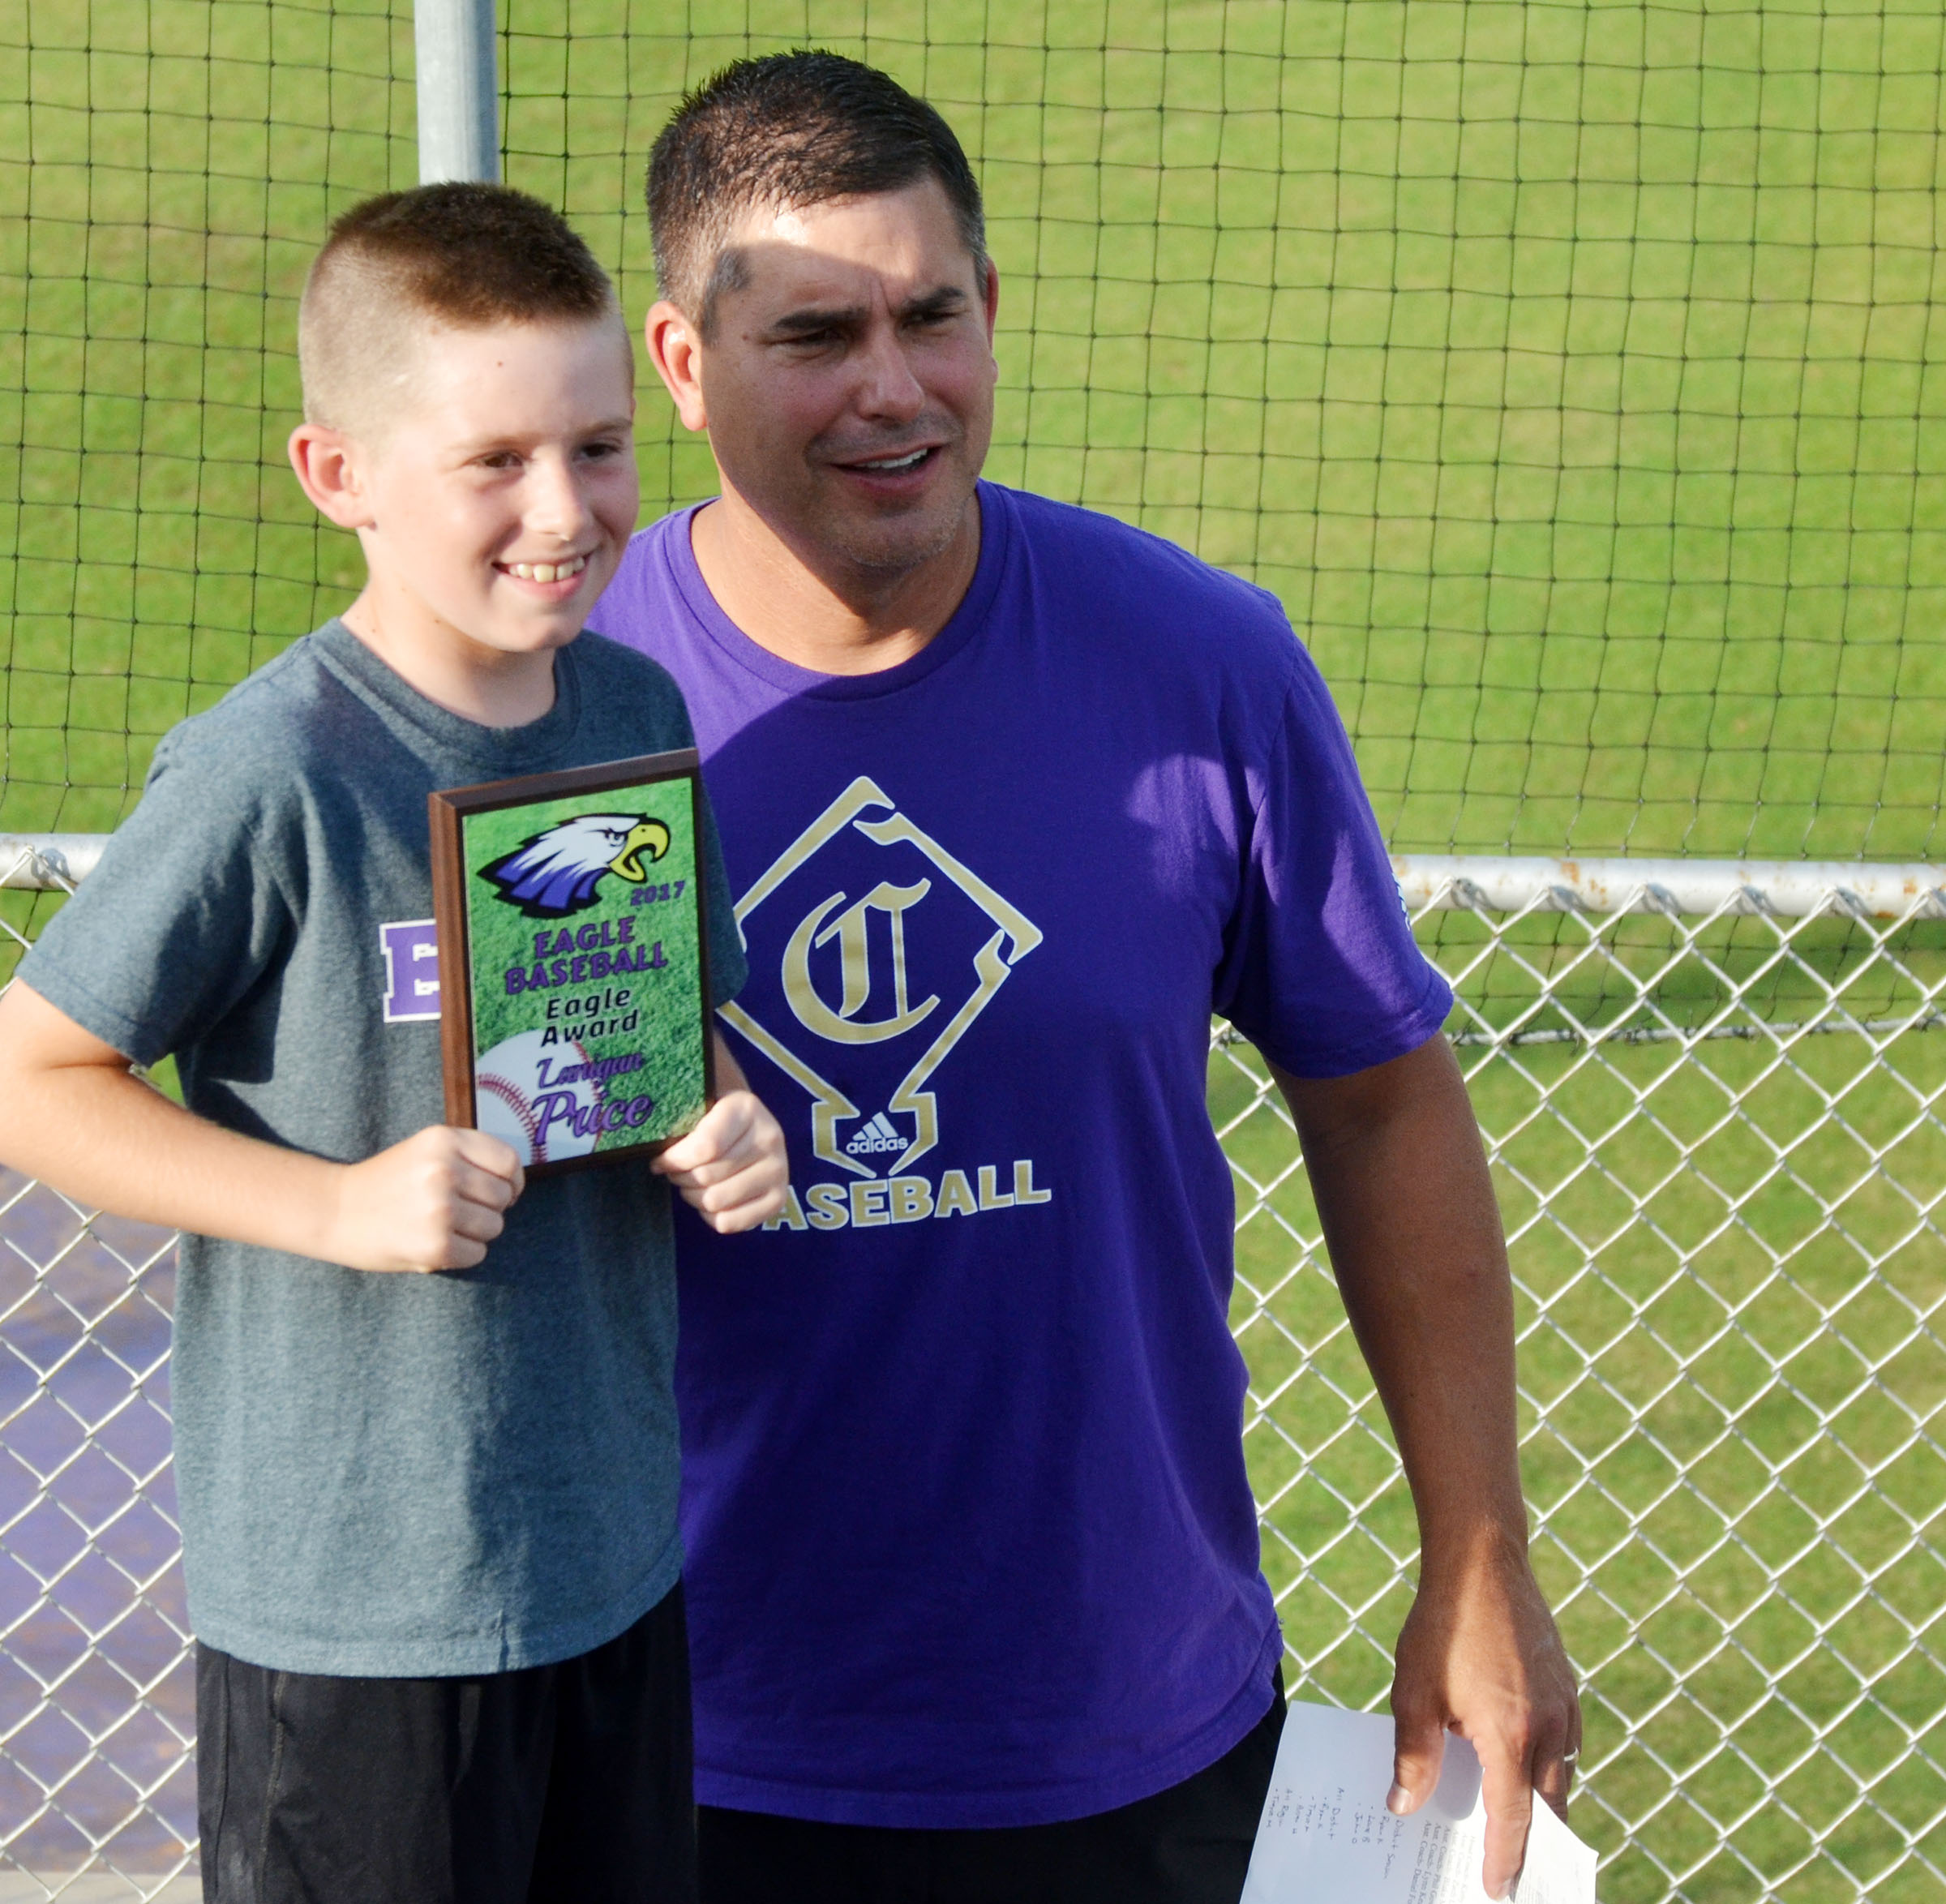 CHS head baseball coach Kirby Smith honors Campbellsville Elementary School second-grader Lanigan Price with an Eagle Award for being the team's bat boy.